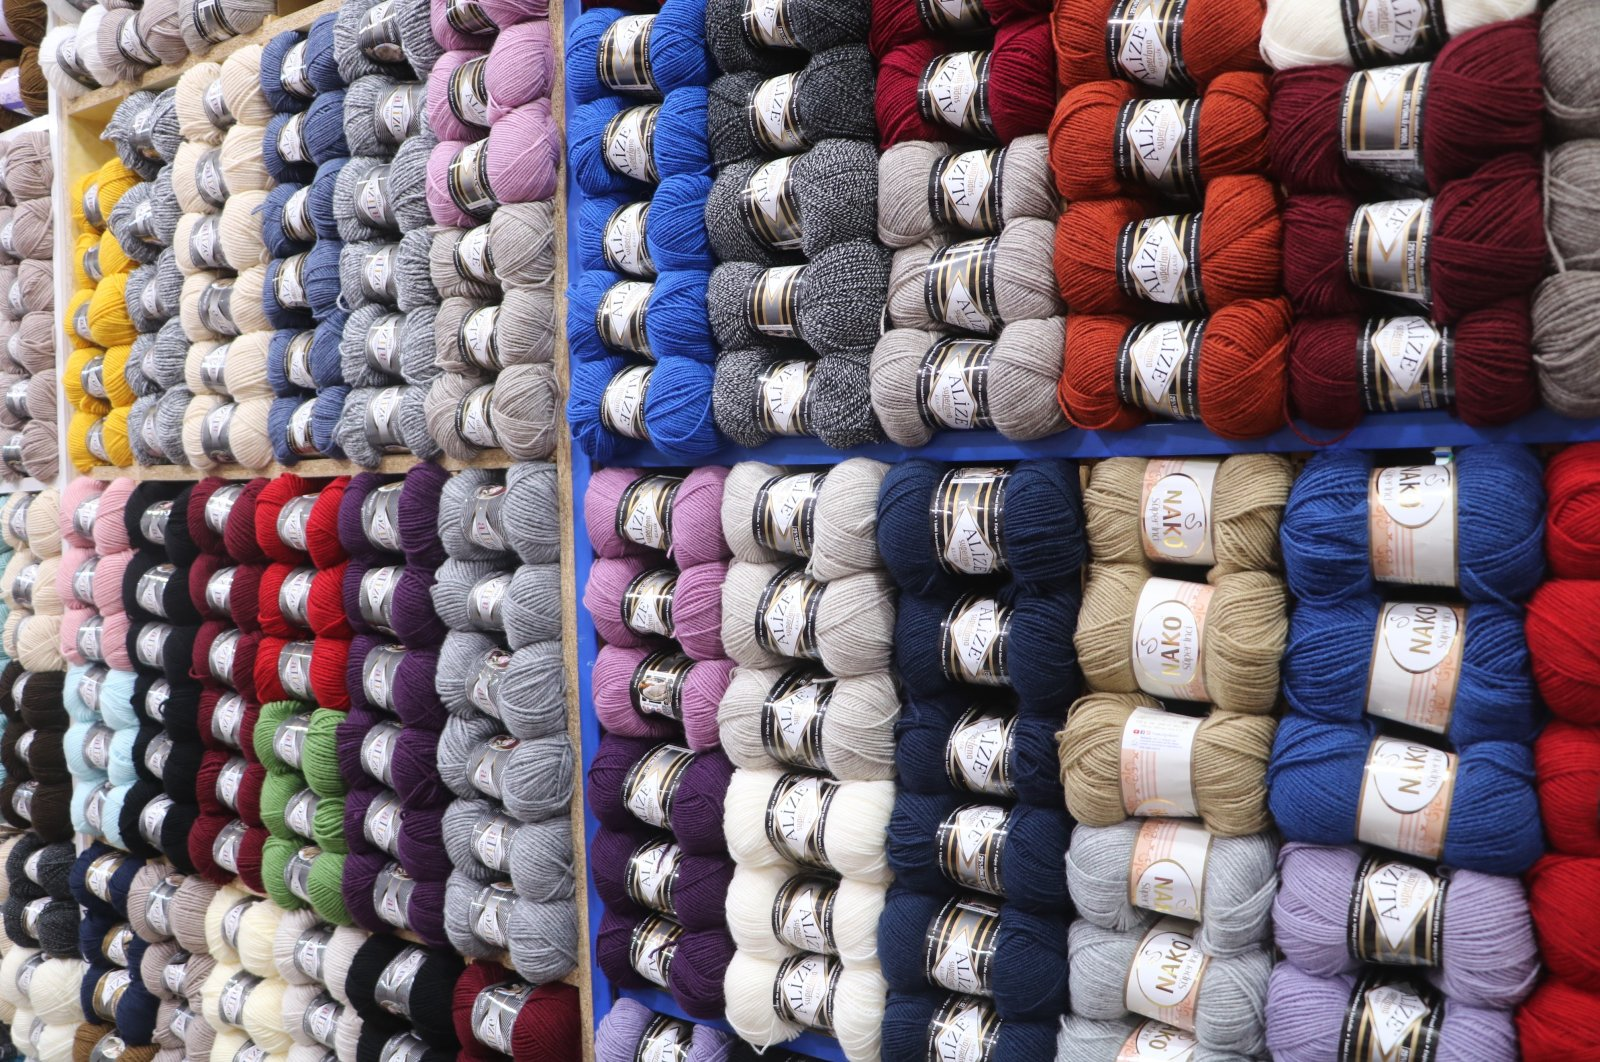 Various new equipment and yarn types have been added to the shops as a result of the rise in popularity, Jan. 7, 2021. (IHA Photo)